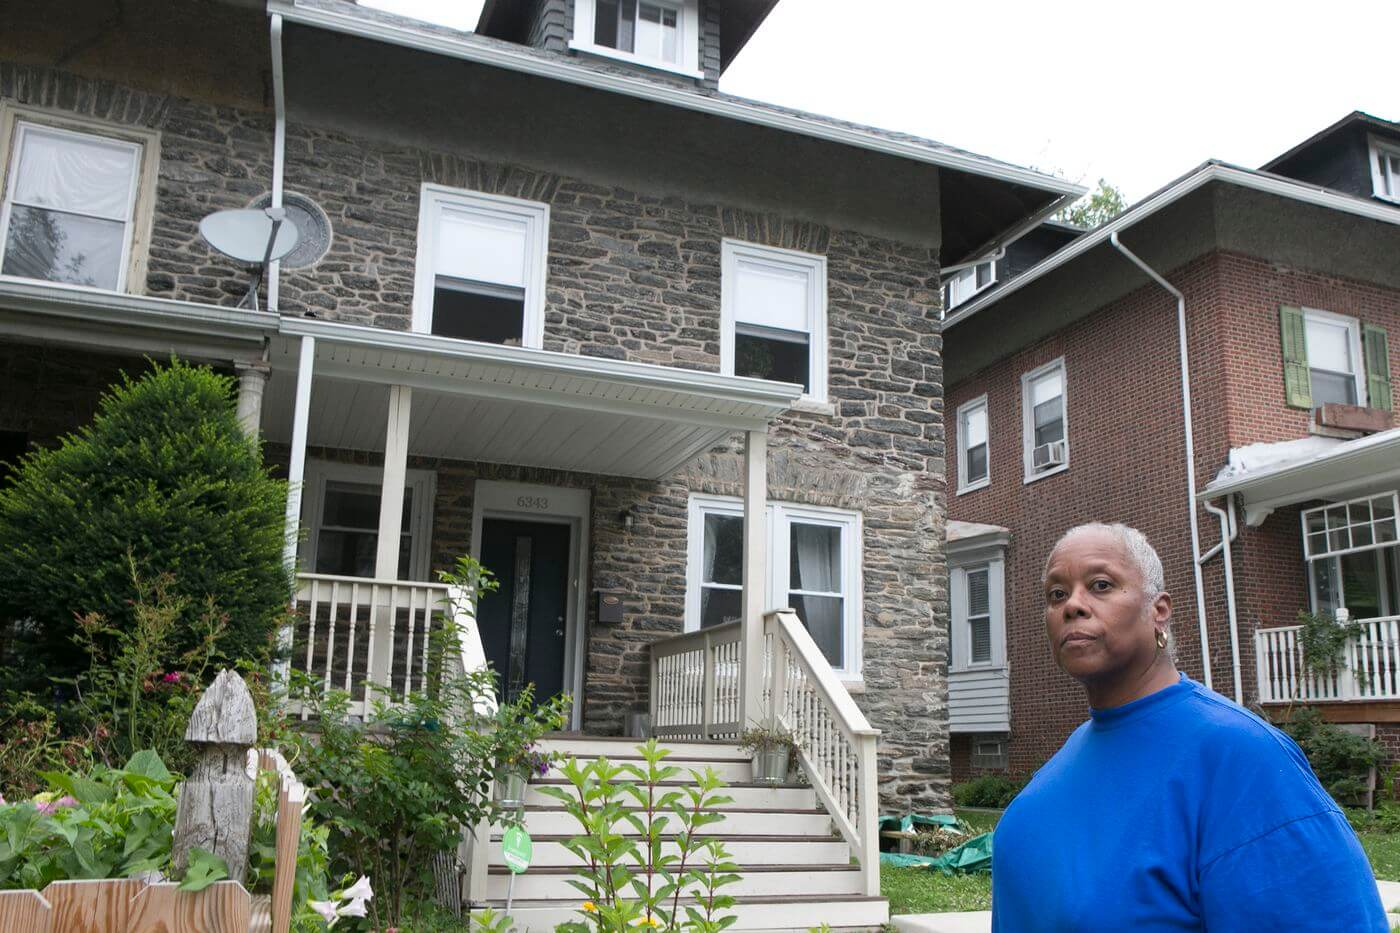 A Philadelphia story: Falsely declared dead, home stolen and no one will help Three years ago, Tonya Bell went to City Hall and discovered that she was dead. And that her house had been stolen.